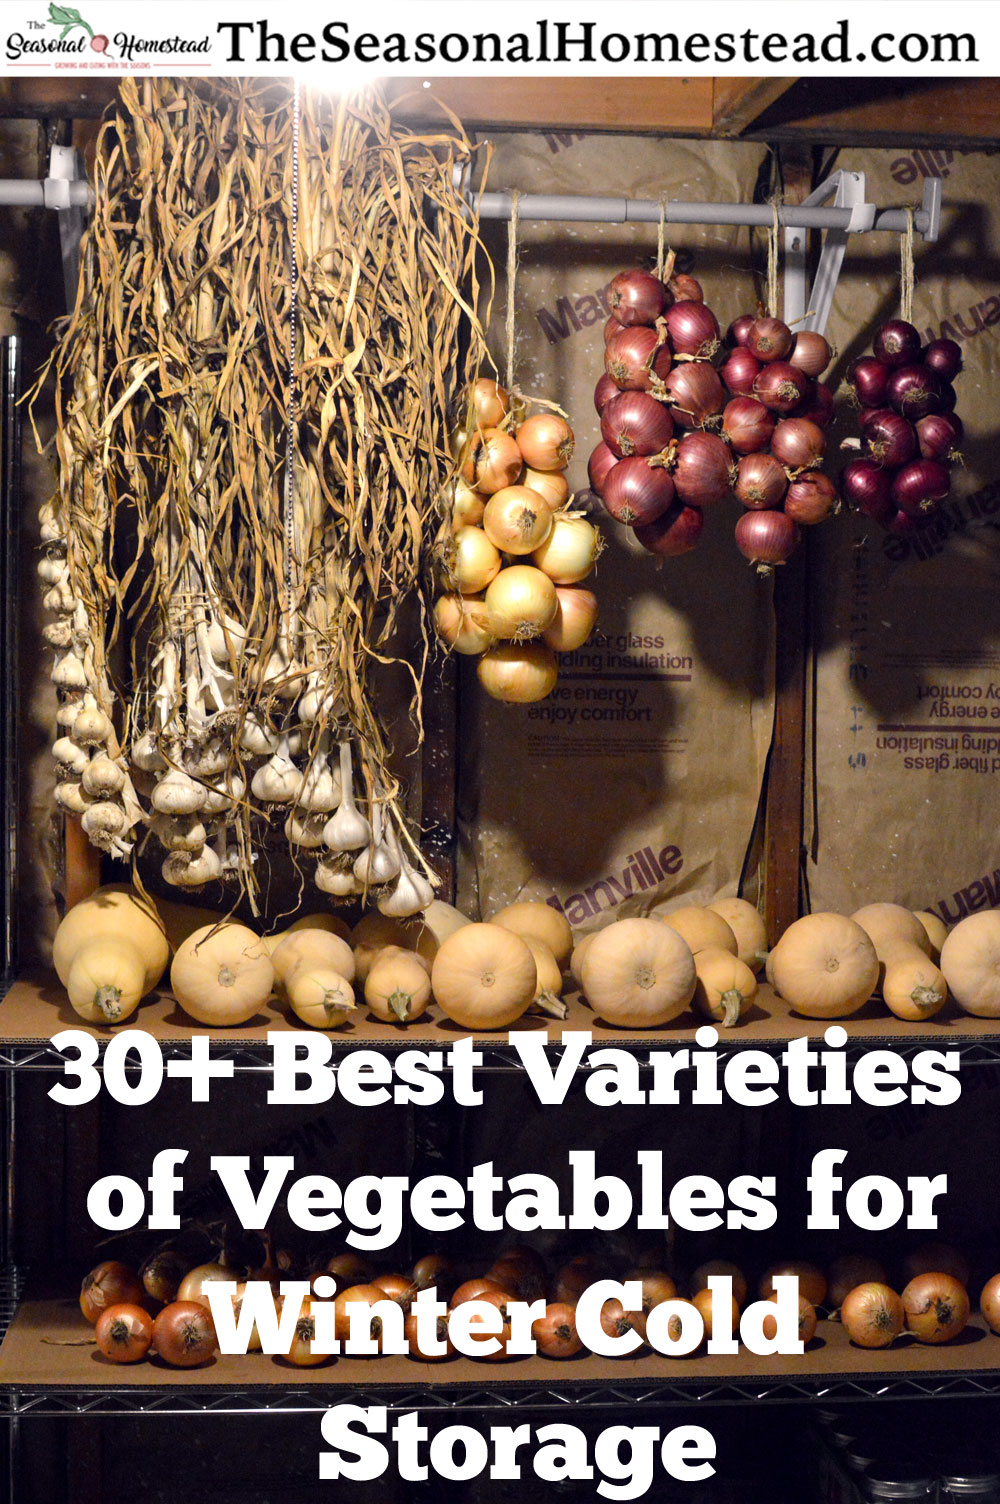 30-best-varieties-of-vegetables-for-winter-cold-storage.jpg